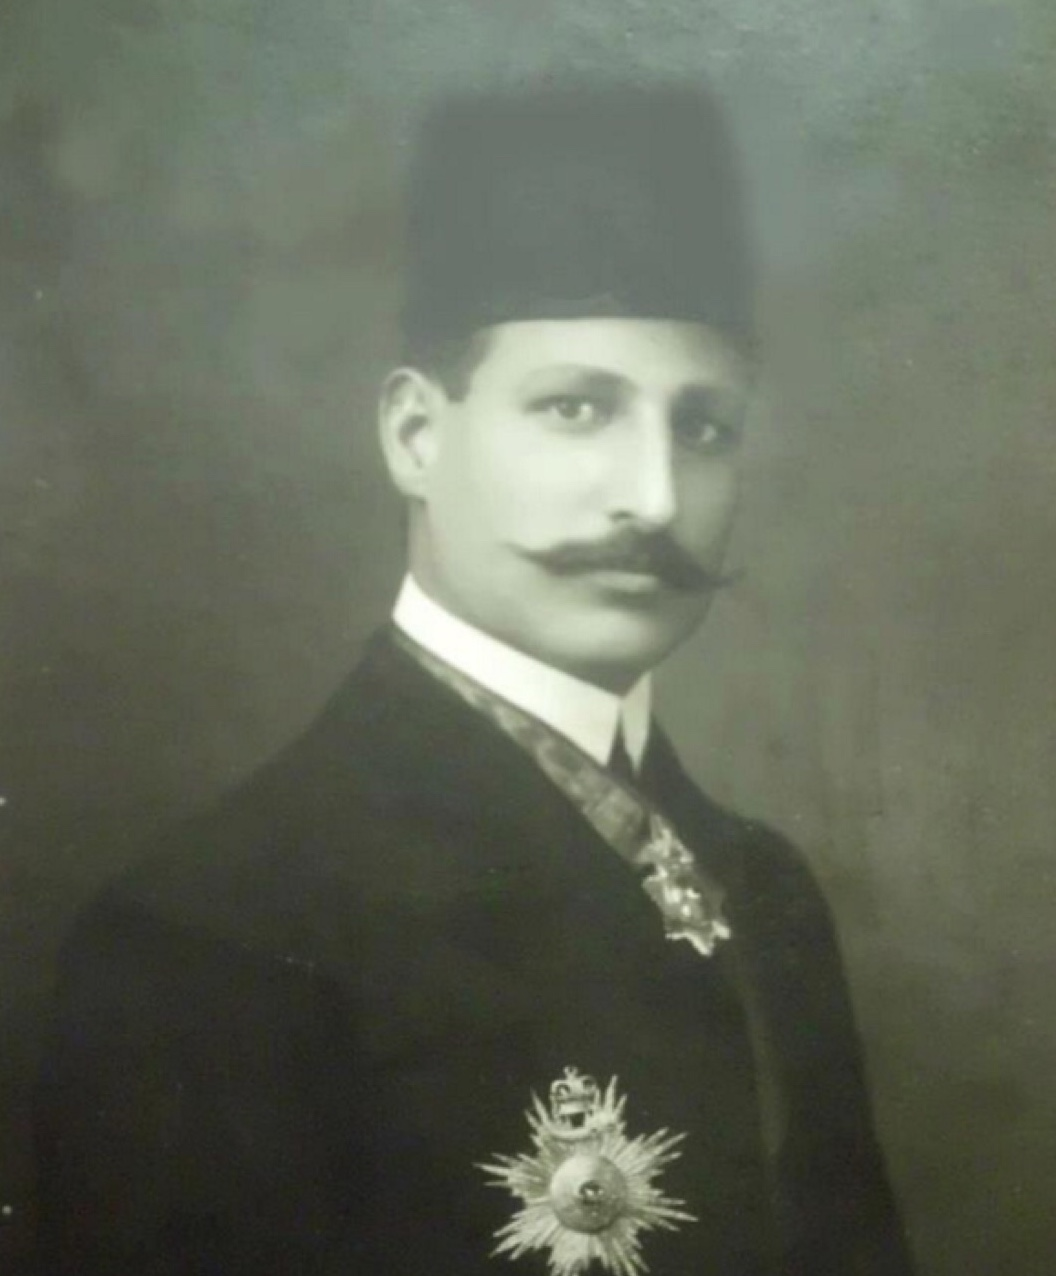 Image of Riad Shehata from Wikidata